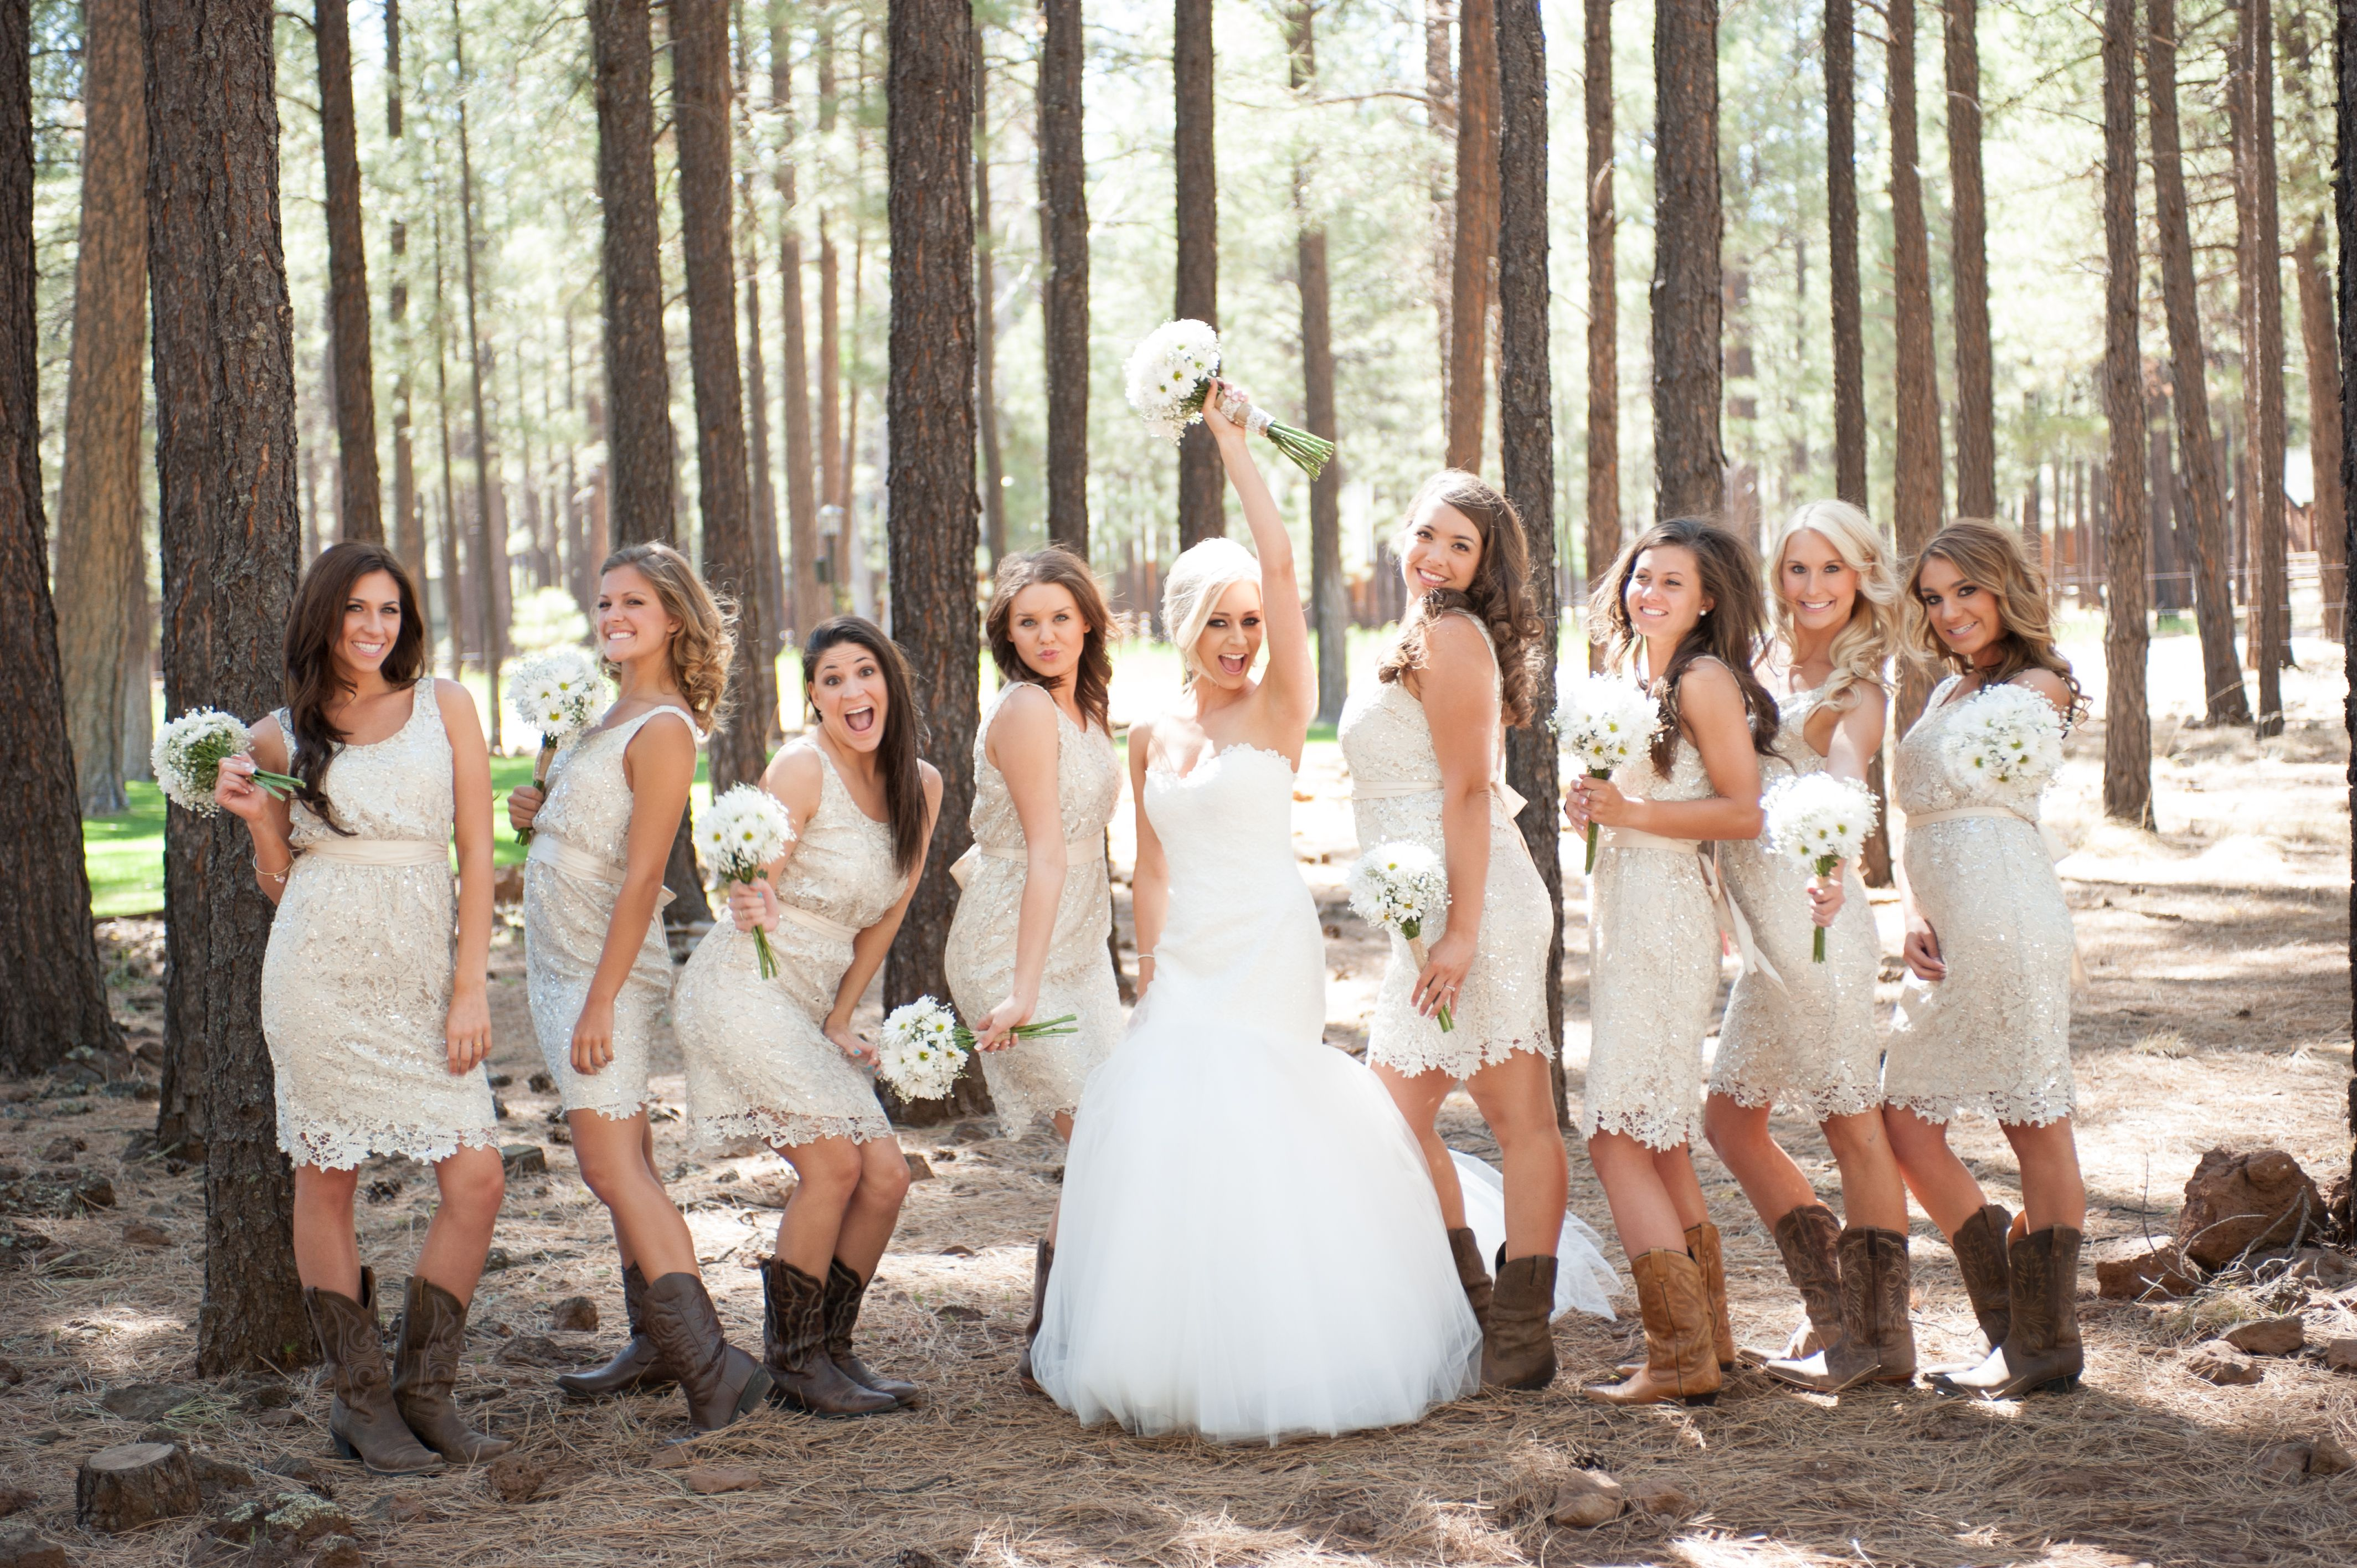 rustic wedding dresses Country Wedding Rustic Wedding Barn Wedding Lace Bridesmaids Dress Sparkly Bridesmaids Dress